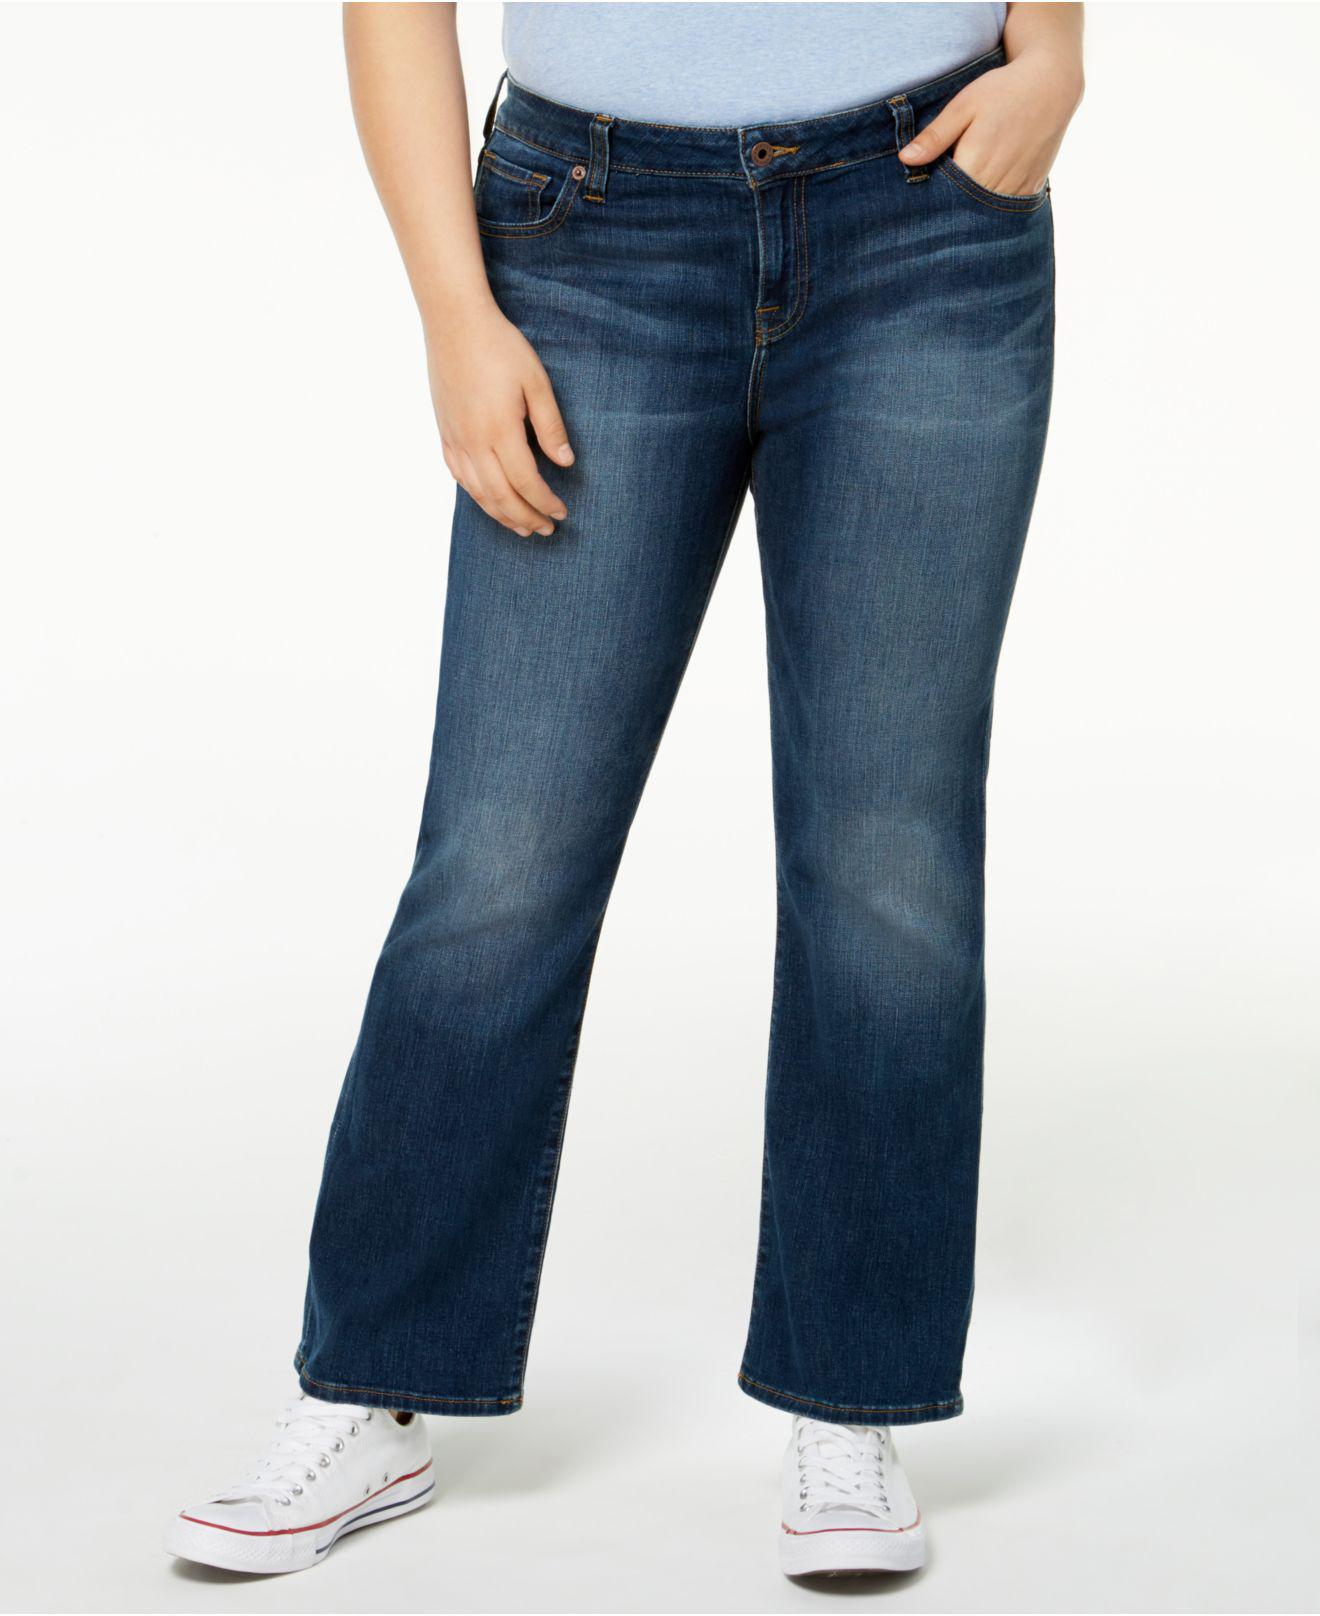 e447512b27d Lyst - Lucky Brand Trendy Plus Size Petite Ginger Bootcut Jeans in Blue